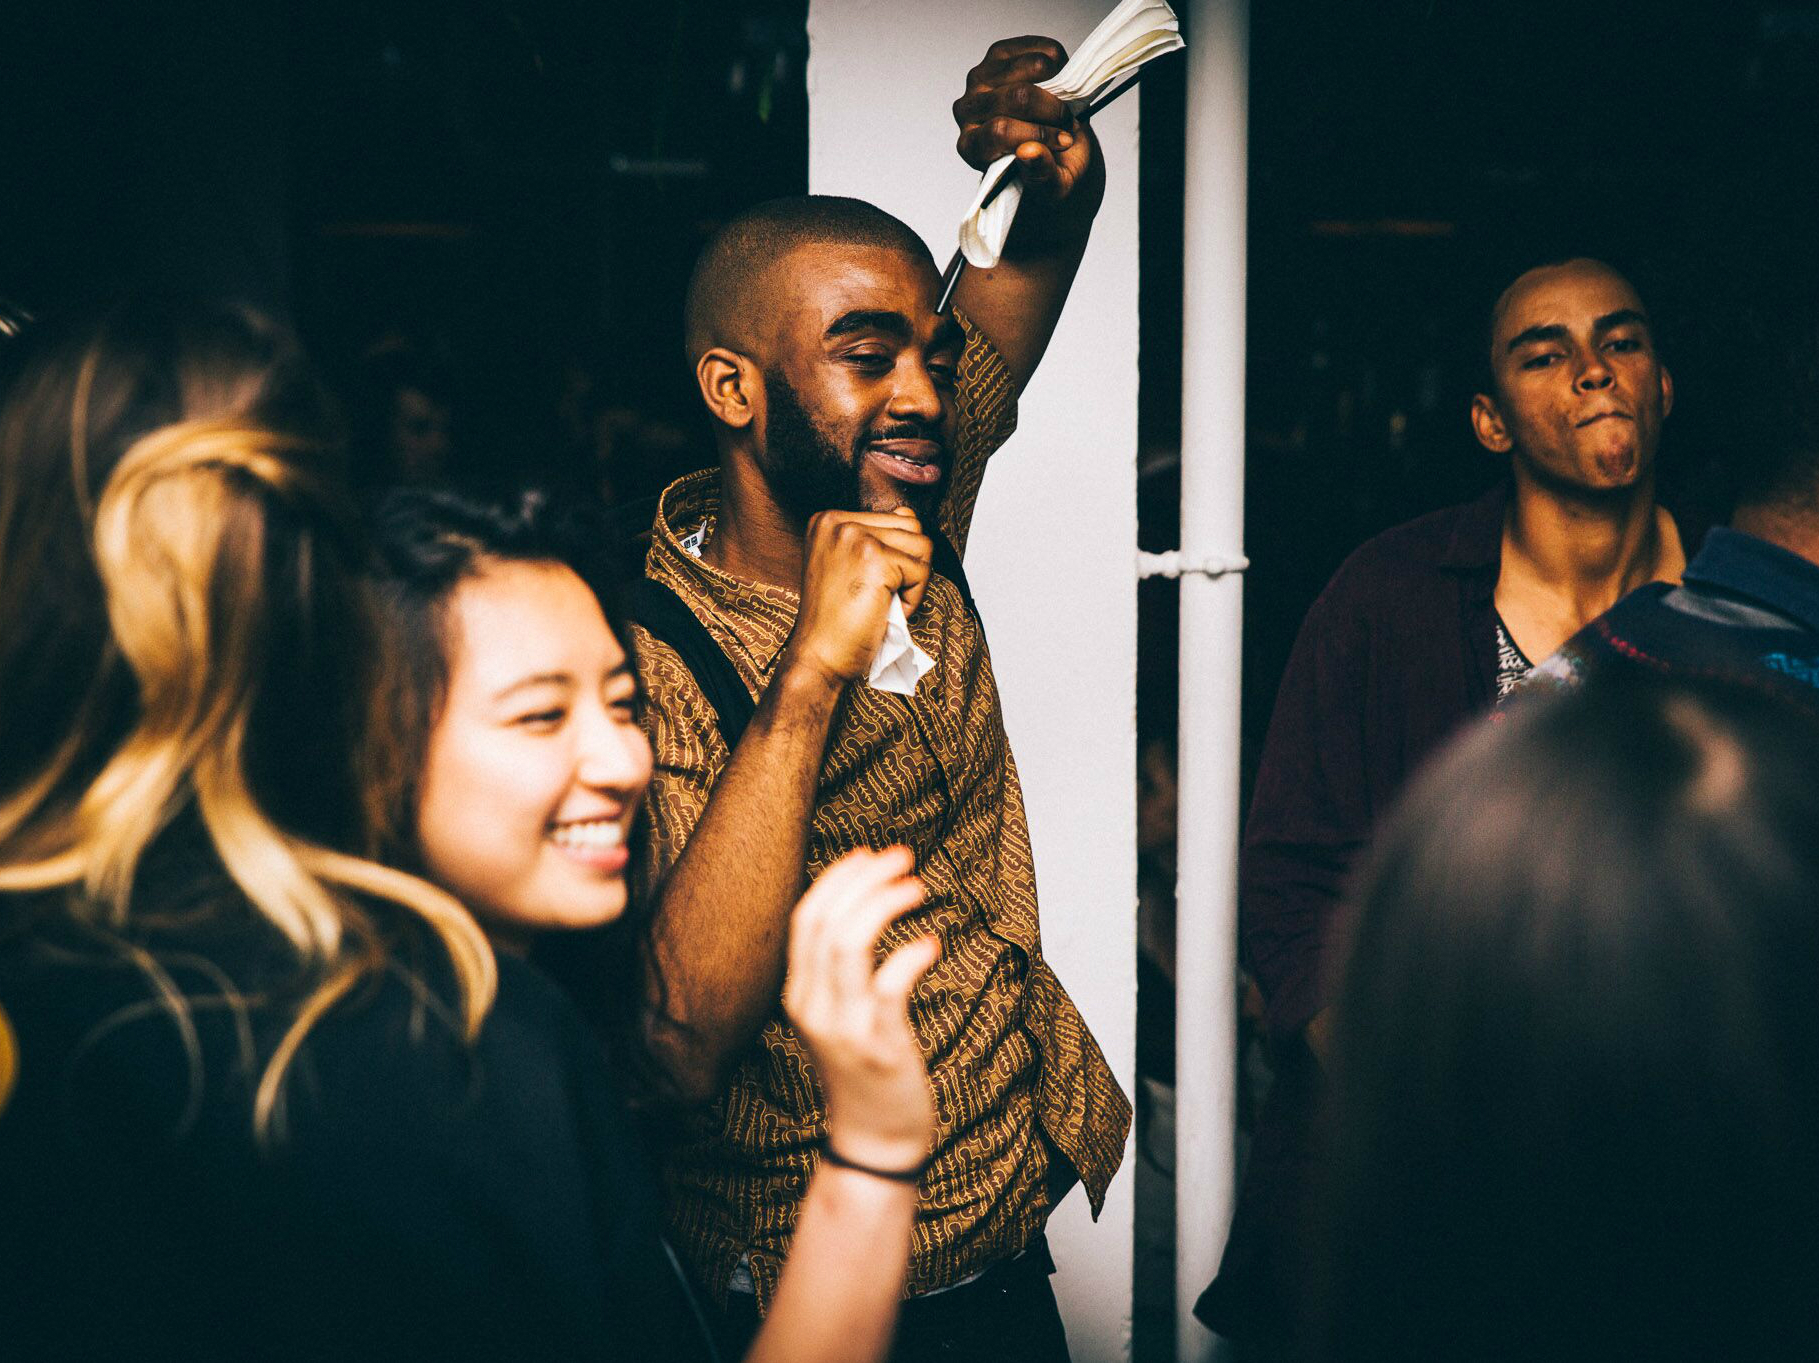 Don't panic - new venues are opening in London